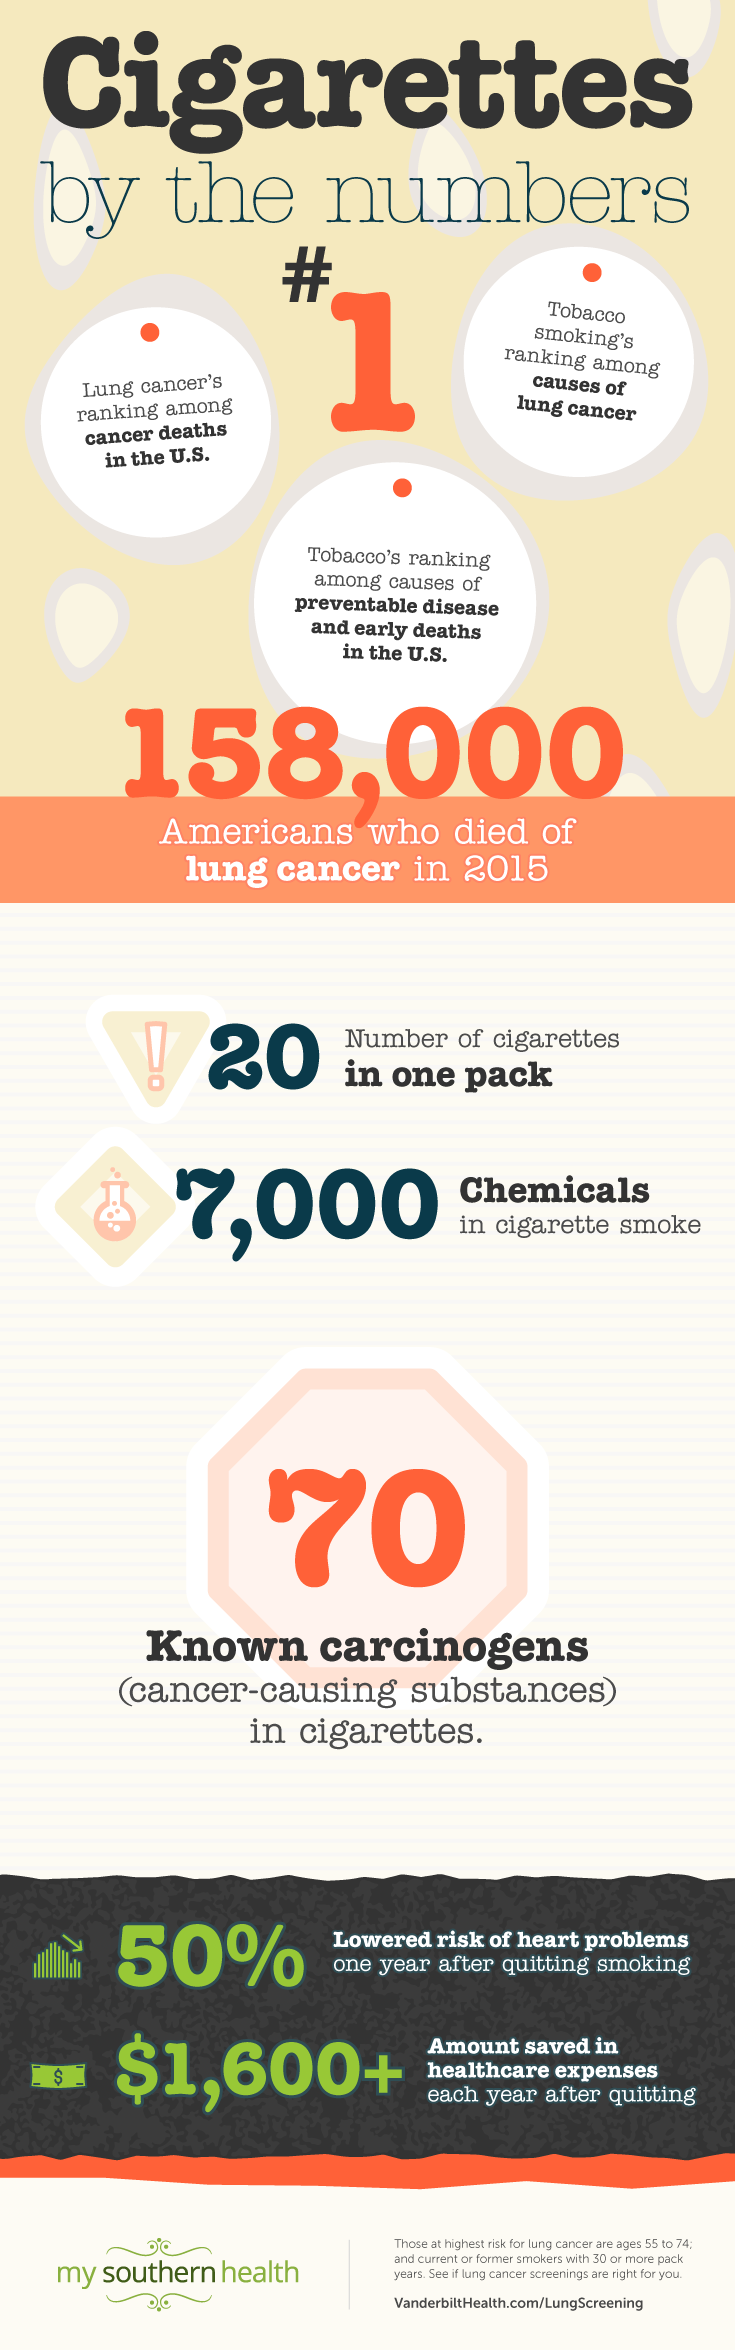 900-2897-MSH-Cigarettes-Numbers-Infographic-MK-FINAL